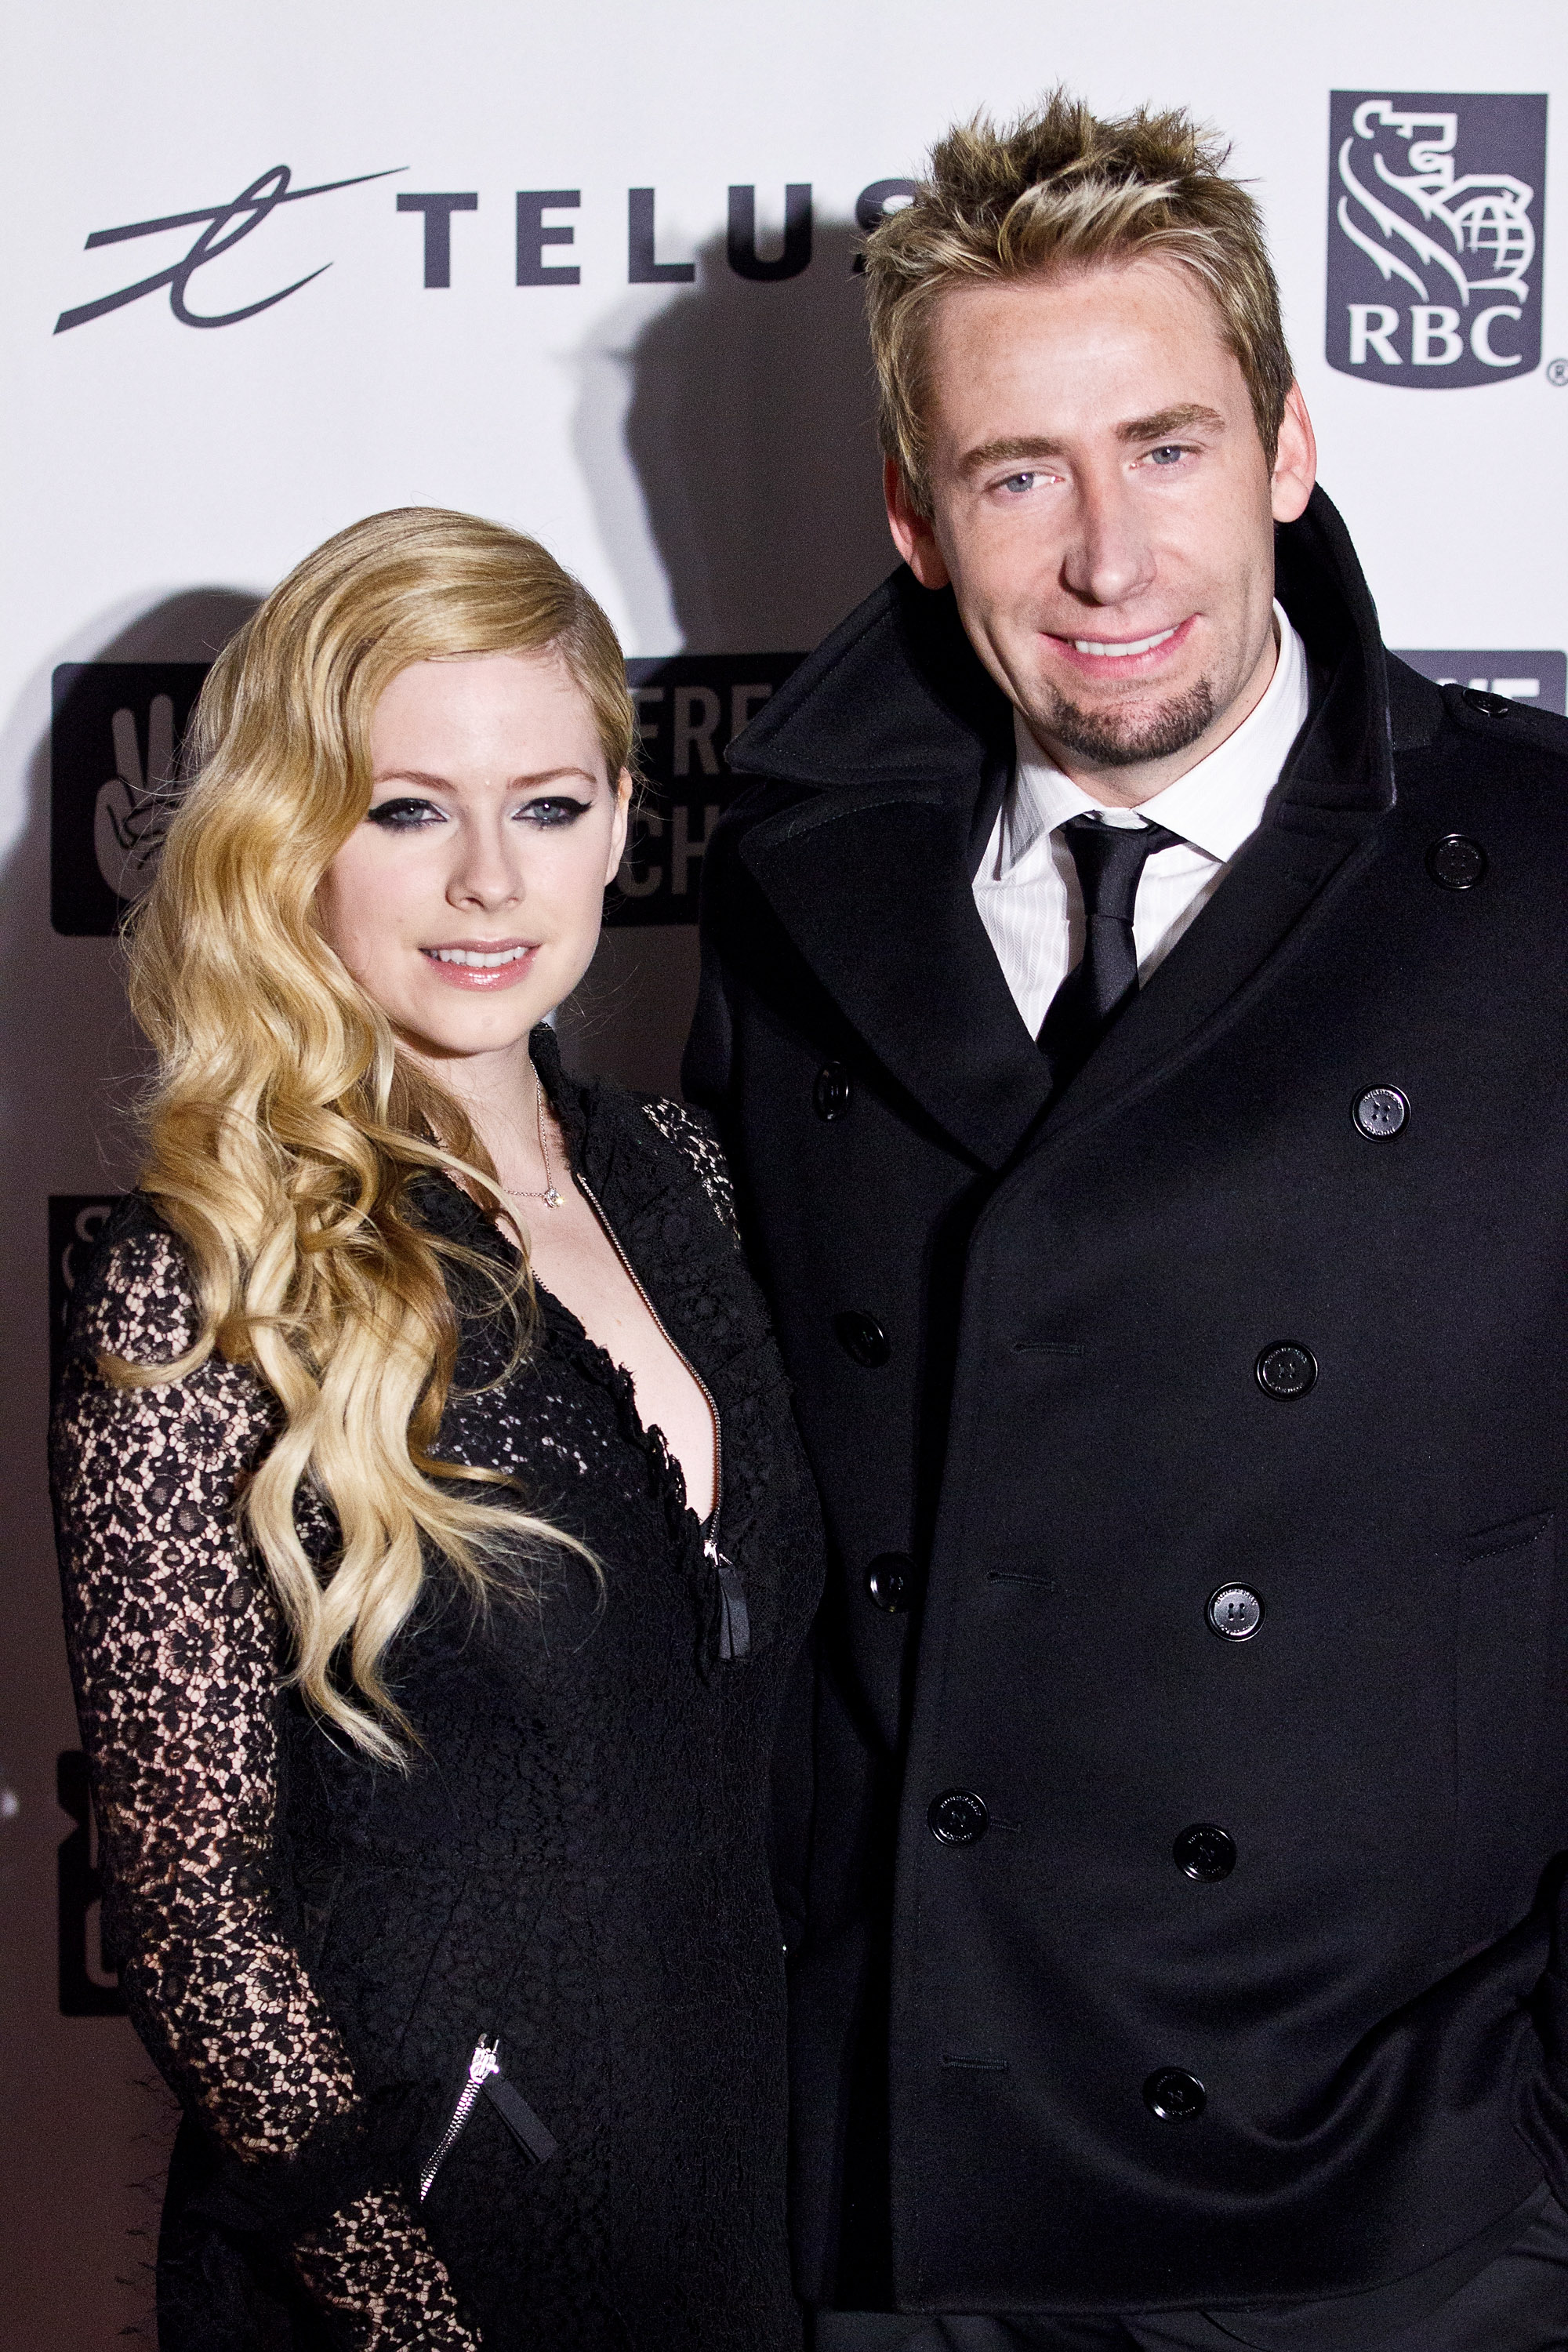 Avril Lavigne and Chad Kroeger at  We Day  event in Vancouver on Oct. 18, 2013.